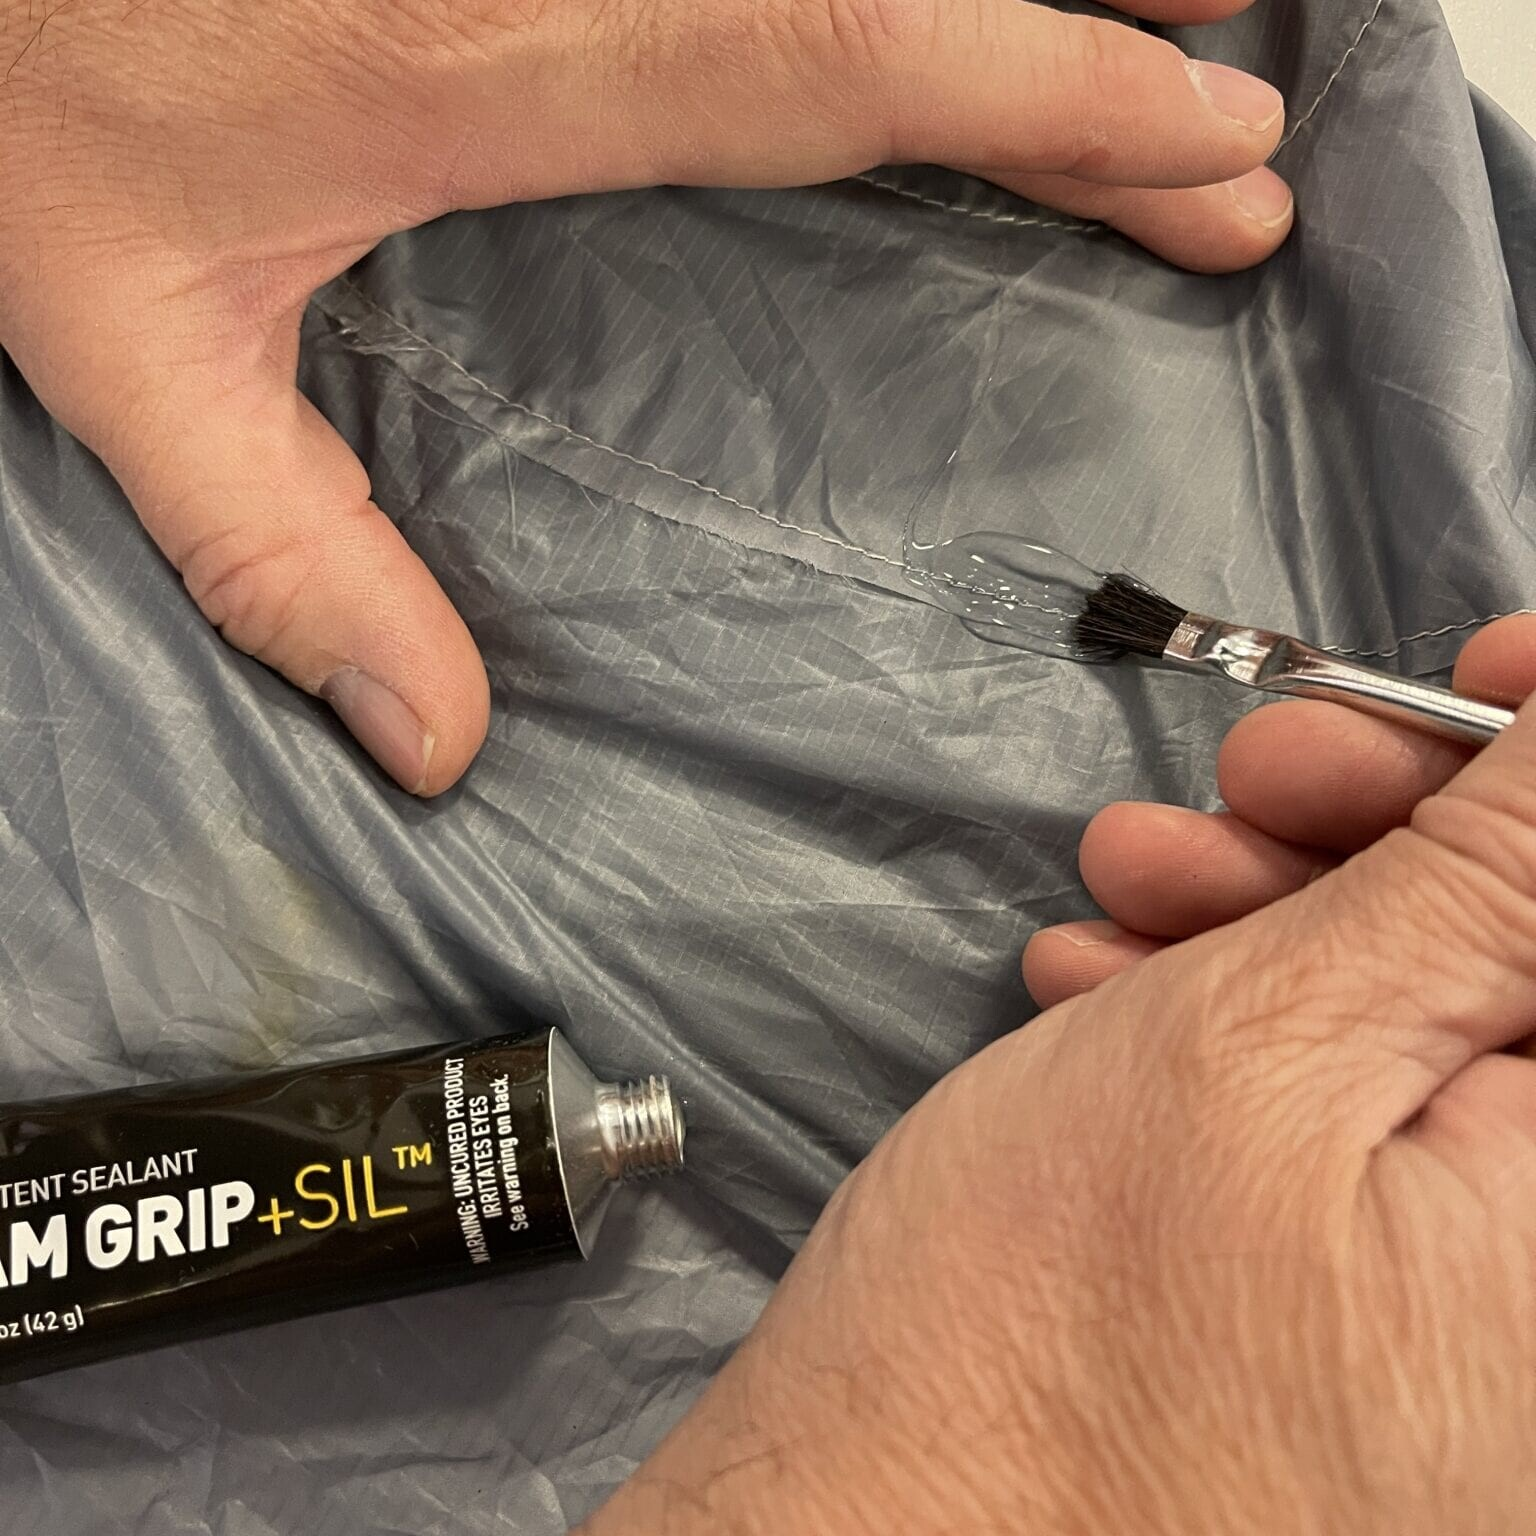 tent sealant being applied to a tent